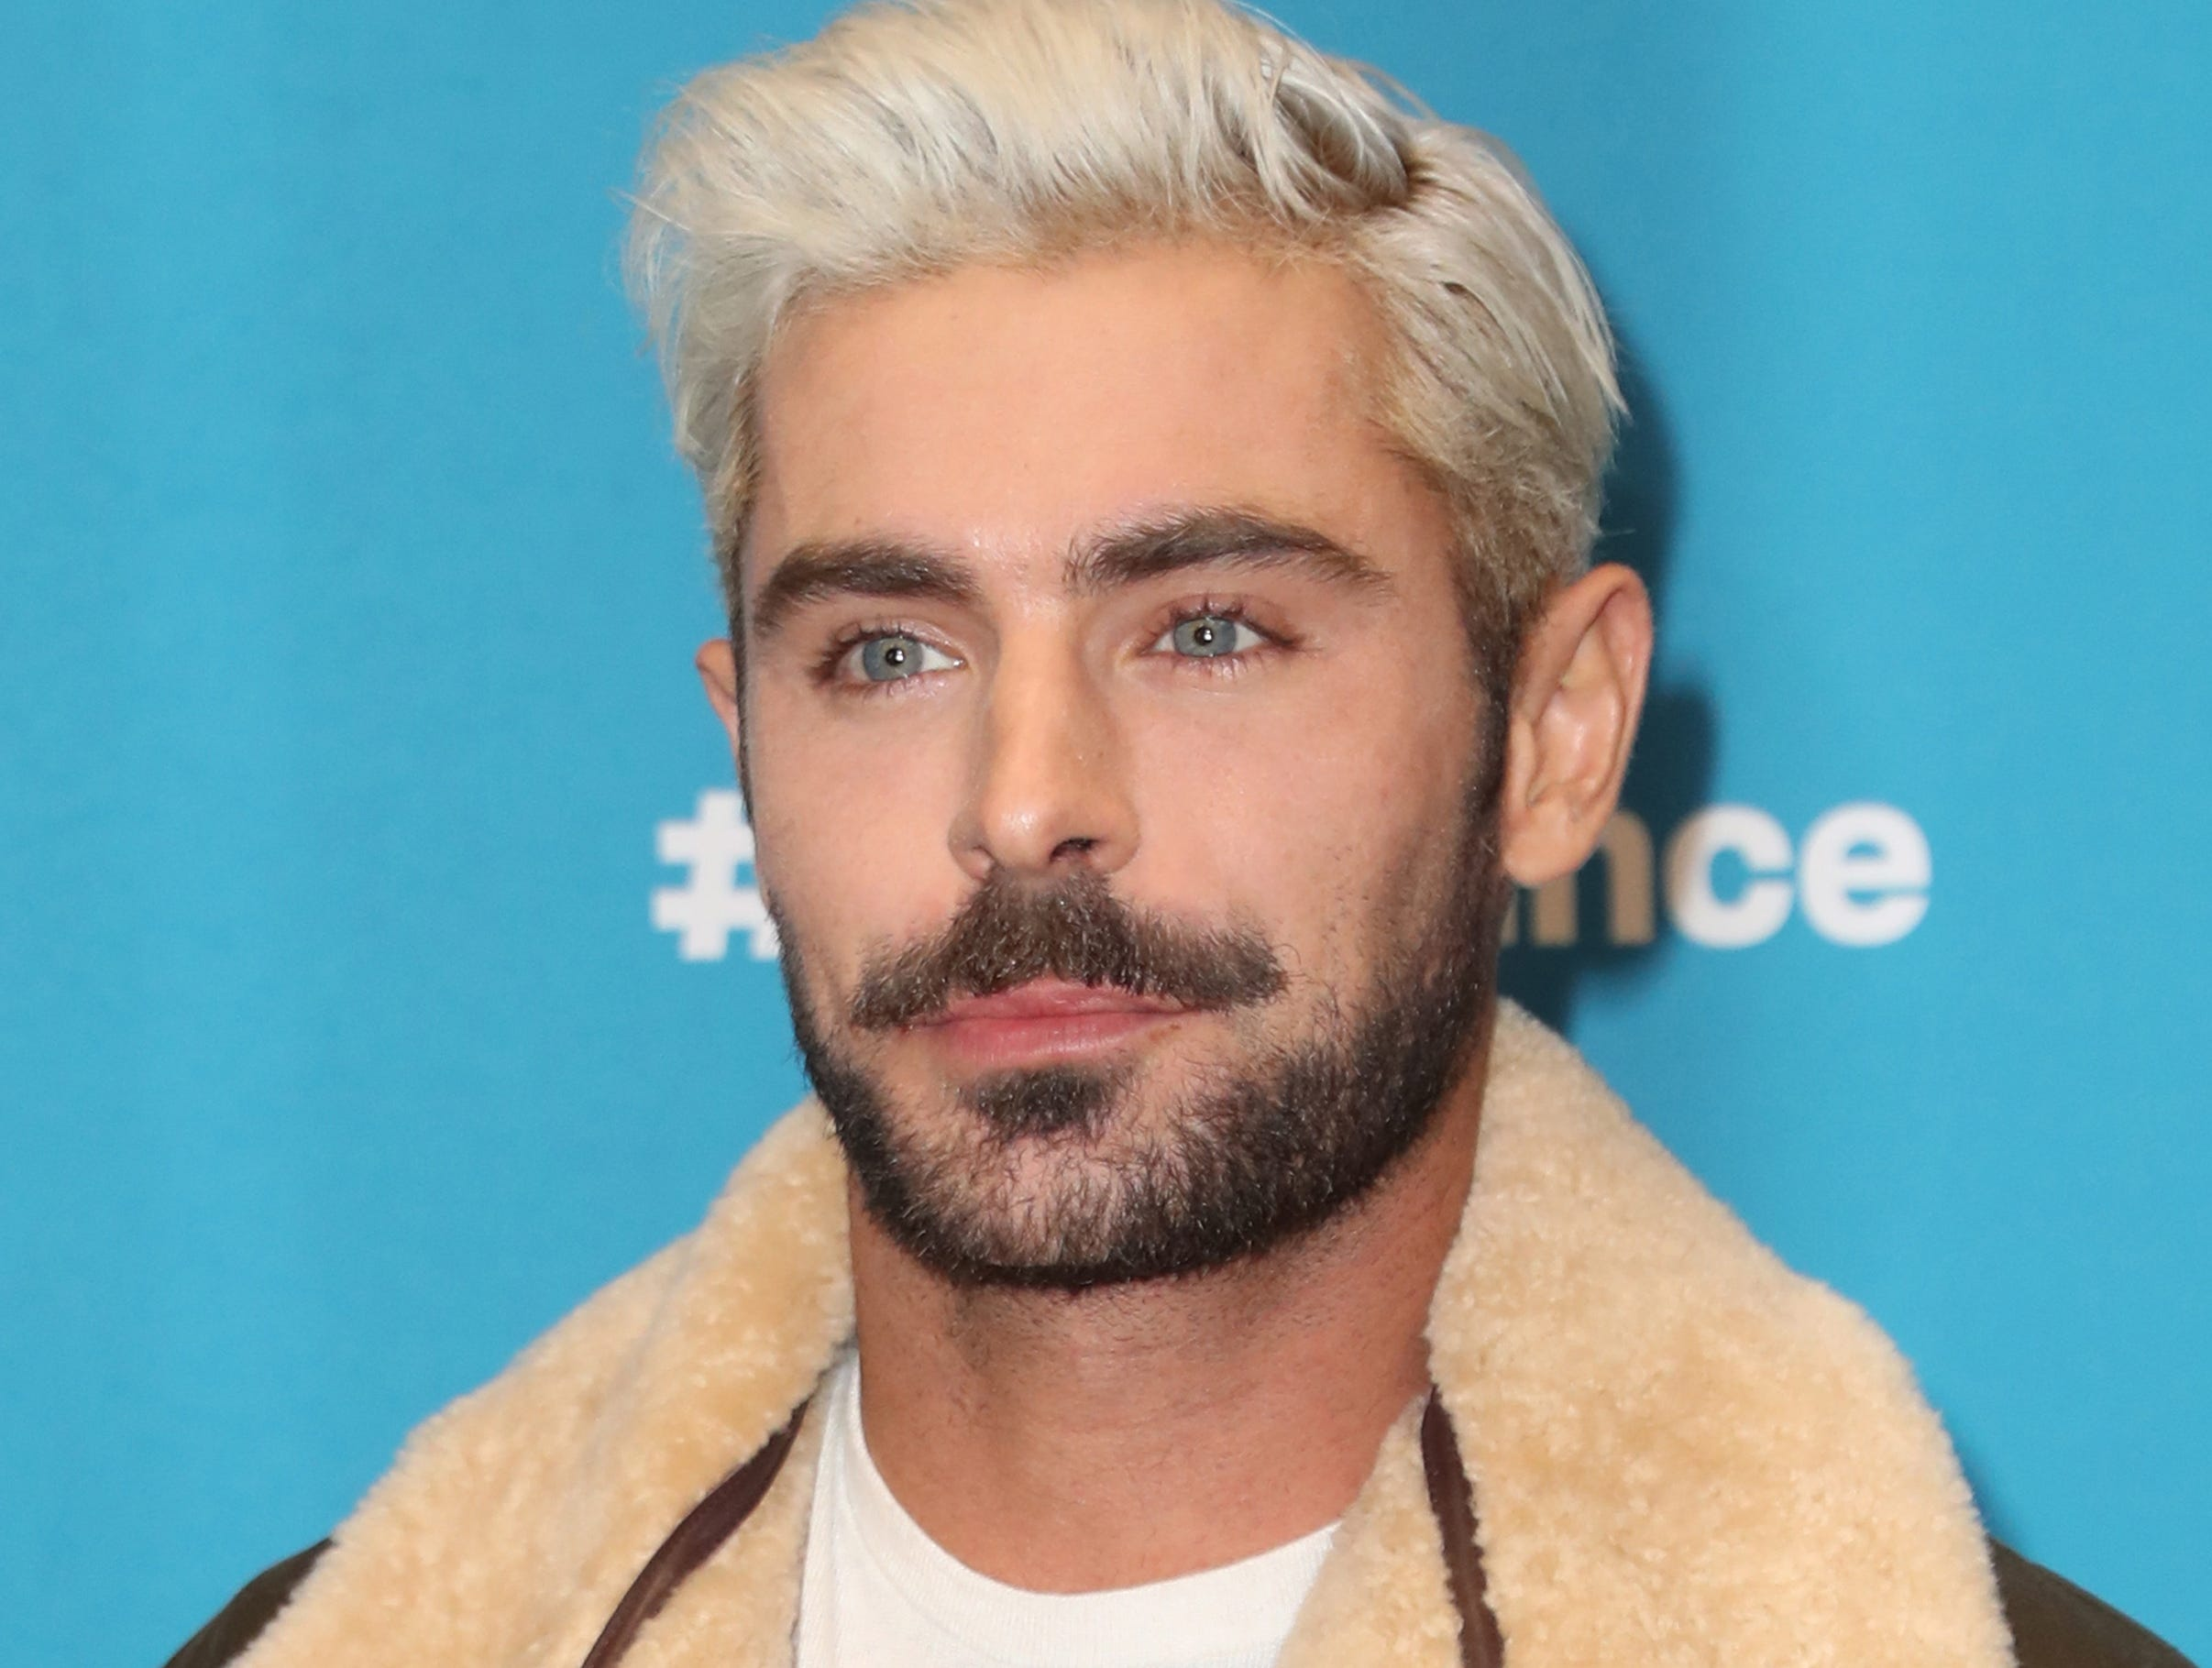 epa07323415 US actor Zac Efron arrives for the premiere of 'Extremely Wicked, Shockingly Evil and Vile' at the 2019 Sundance Film Festival in Park City, Utah, USA, 26 January 2019. The festival runs from 24 January to 02 February 2019.  EPA-EFE/GEORGE FREY ORG XMIT: GFX-Sundance-043